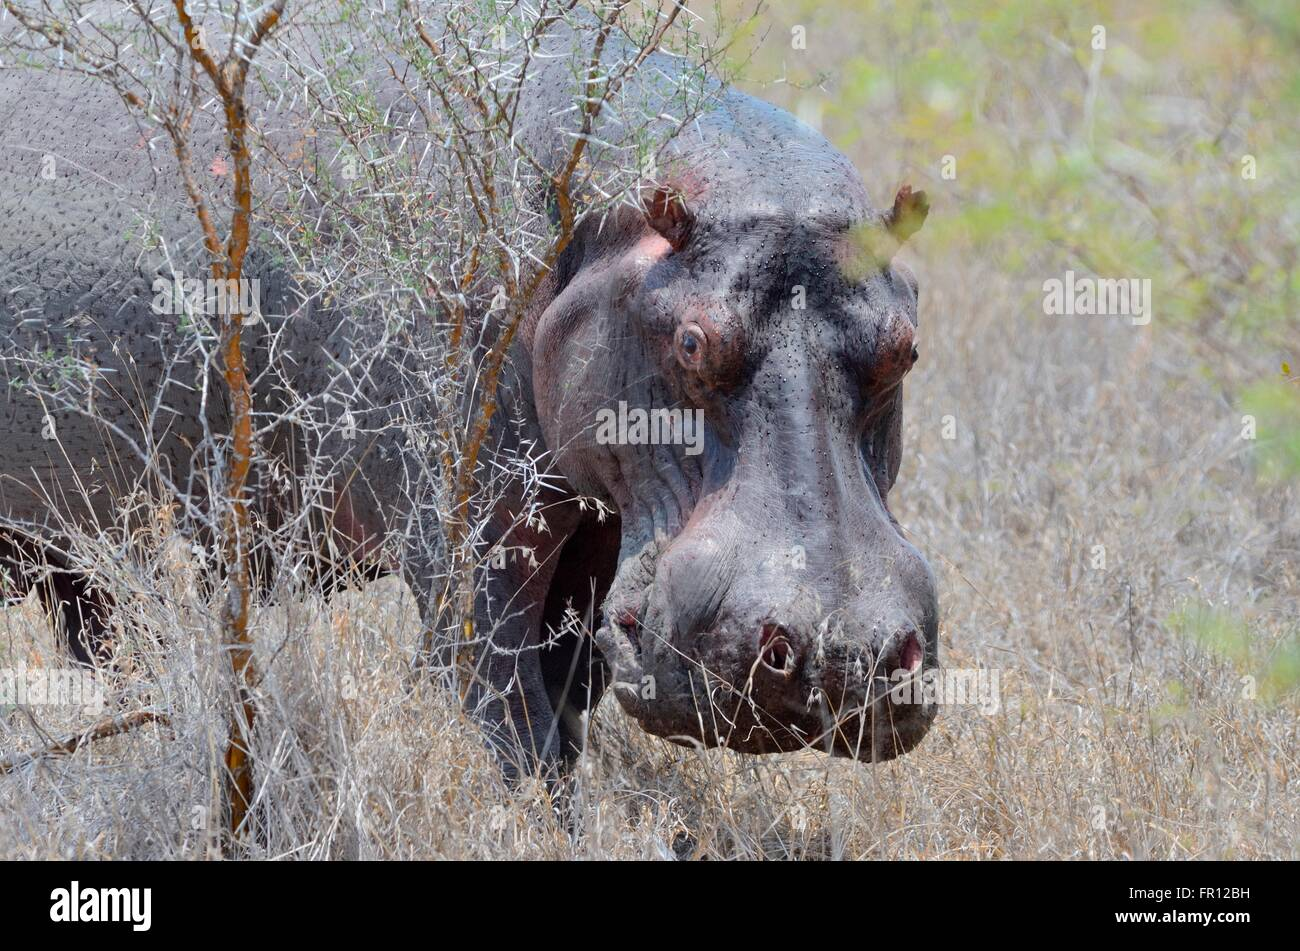 Hippopotamus (Hippopotamus amphibius), adult male, sweating, in dry grass, Kruger National Park, South Africa, Africa - Stock Image